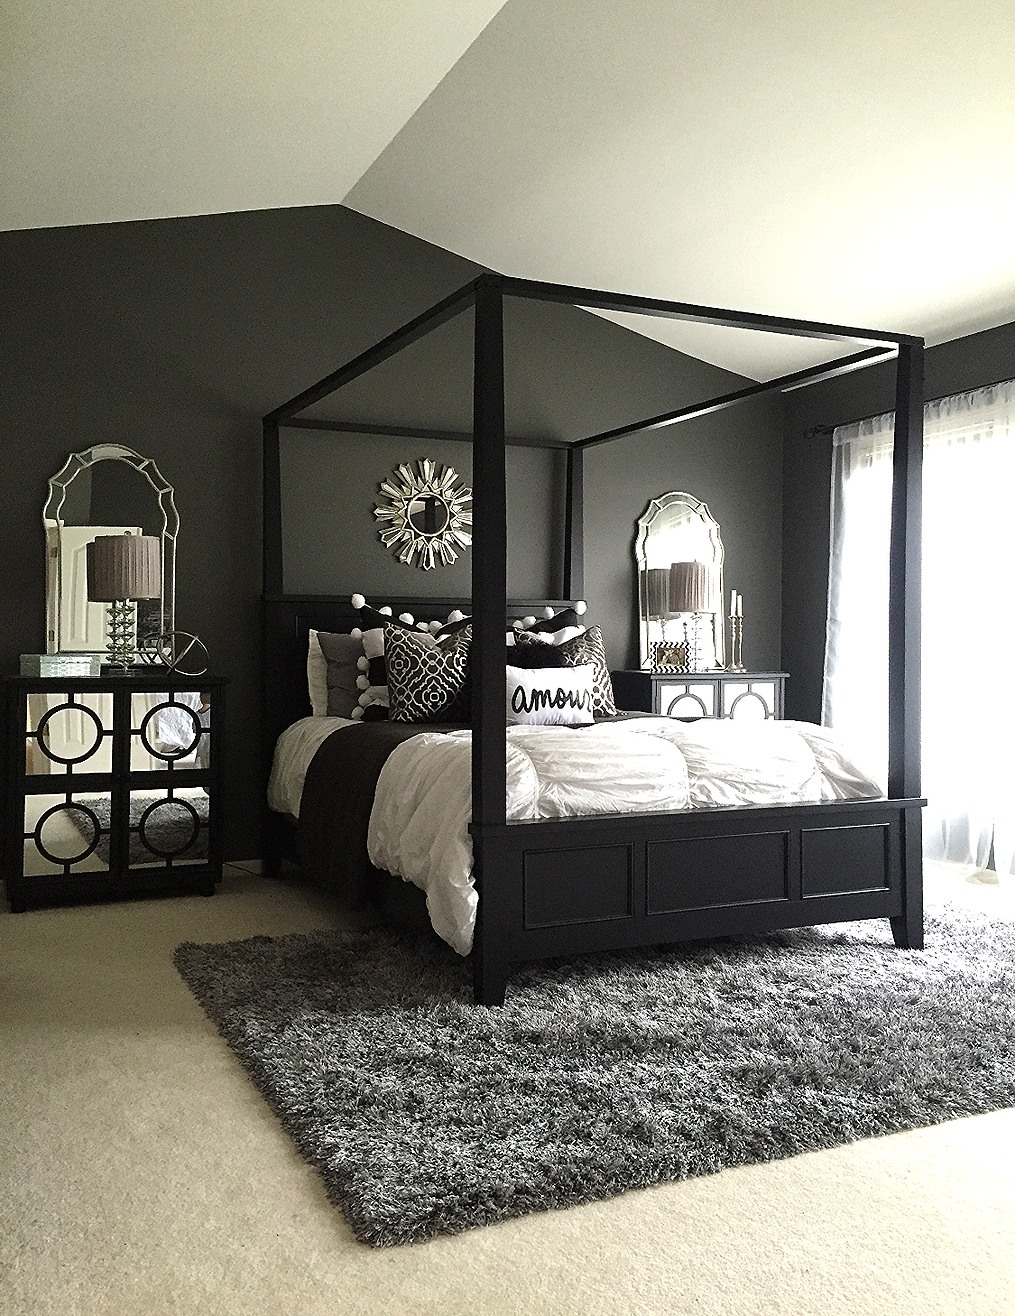 Master bedroom grey and white  Haneens Haven  home dec  Pinterest  Bedrooms Room and Room ideas